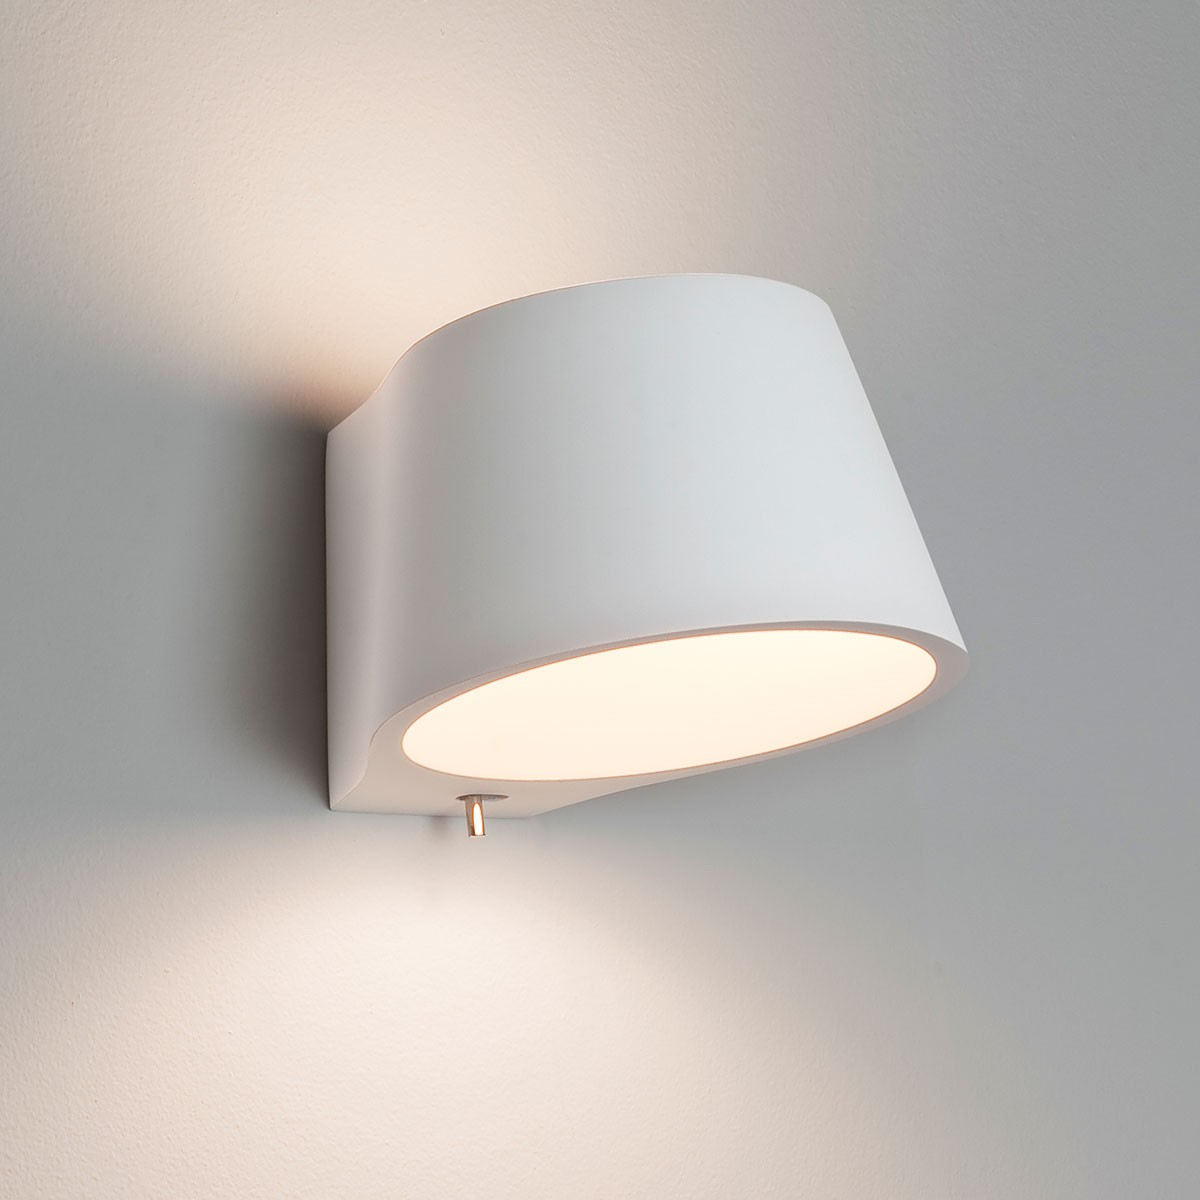 Astro Koza Plaster Wall Light at UK Electrical Supplies.